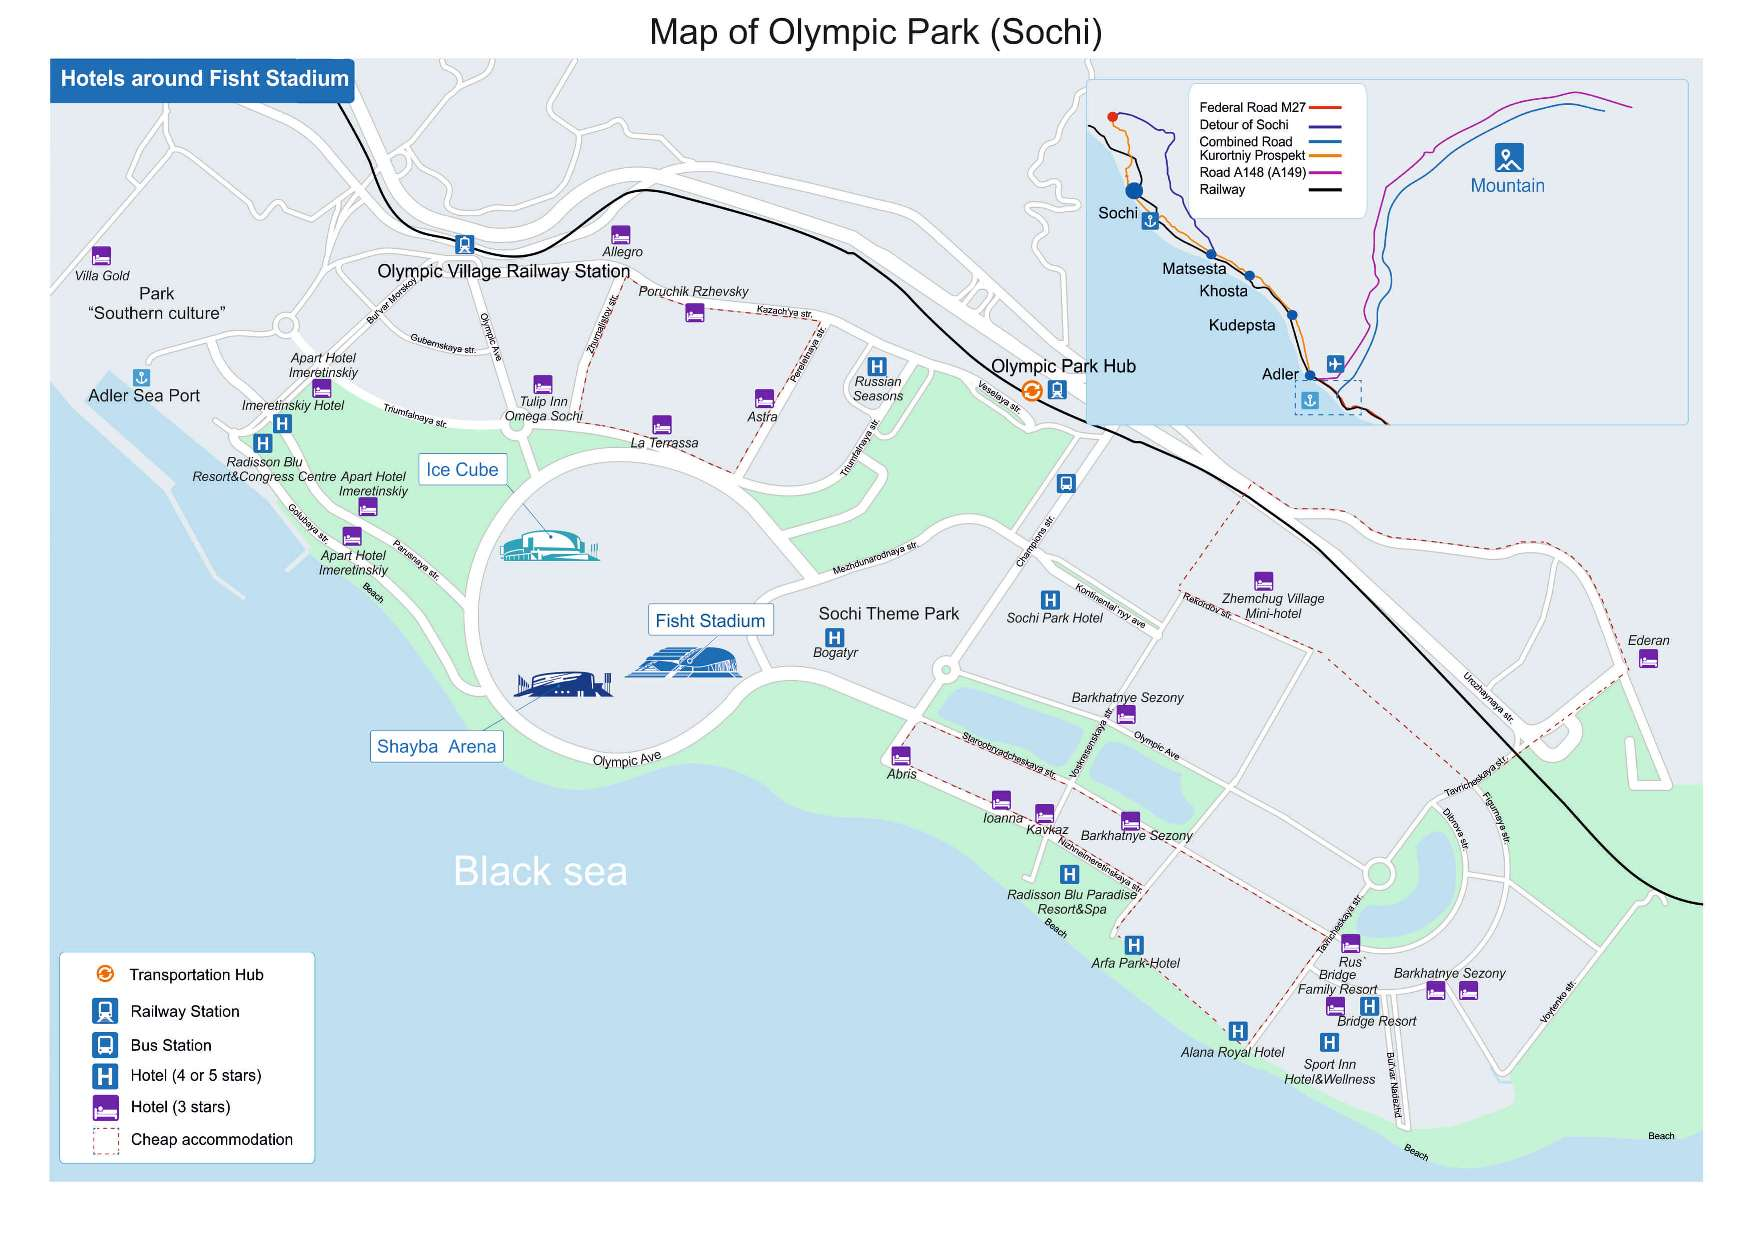 Map of the Olympic Park in Sochi (Adler)